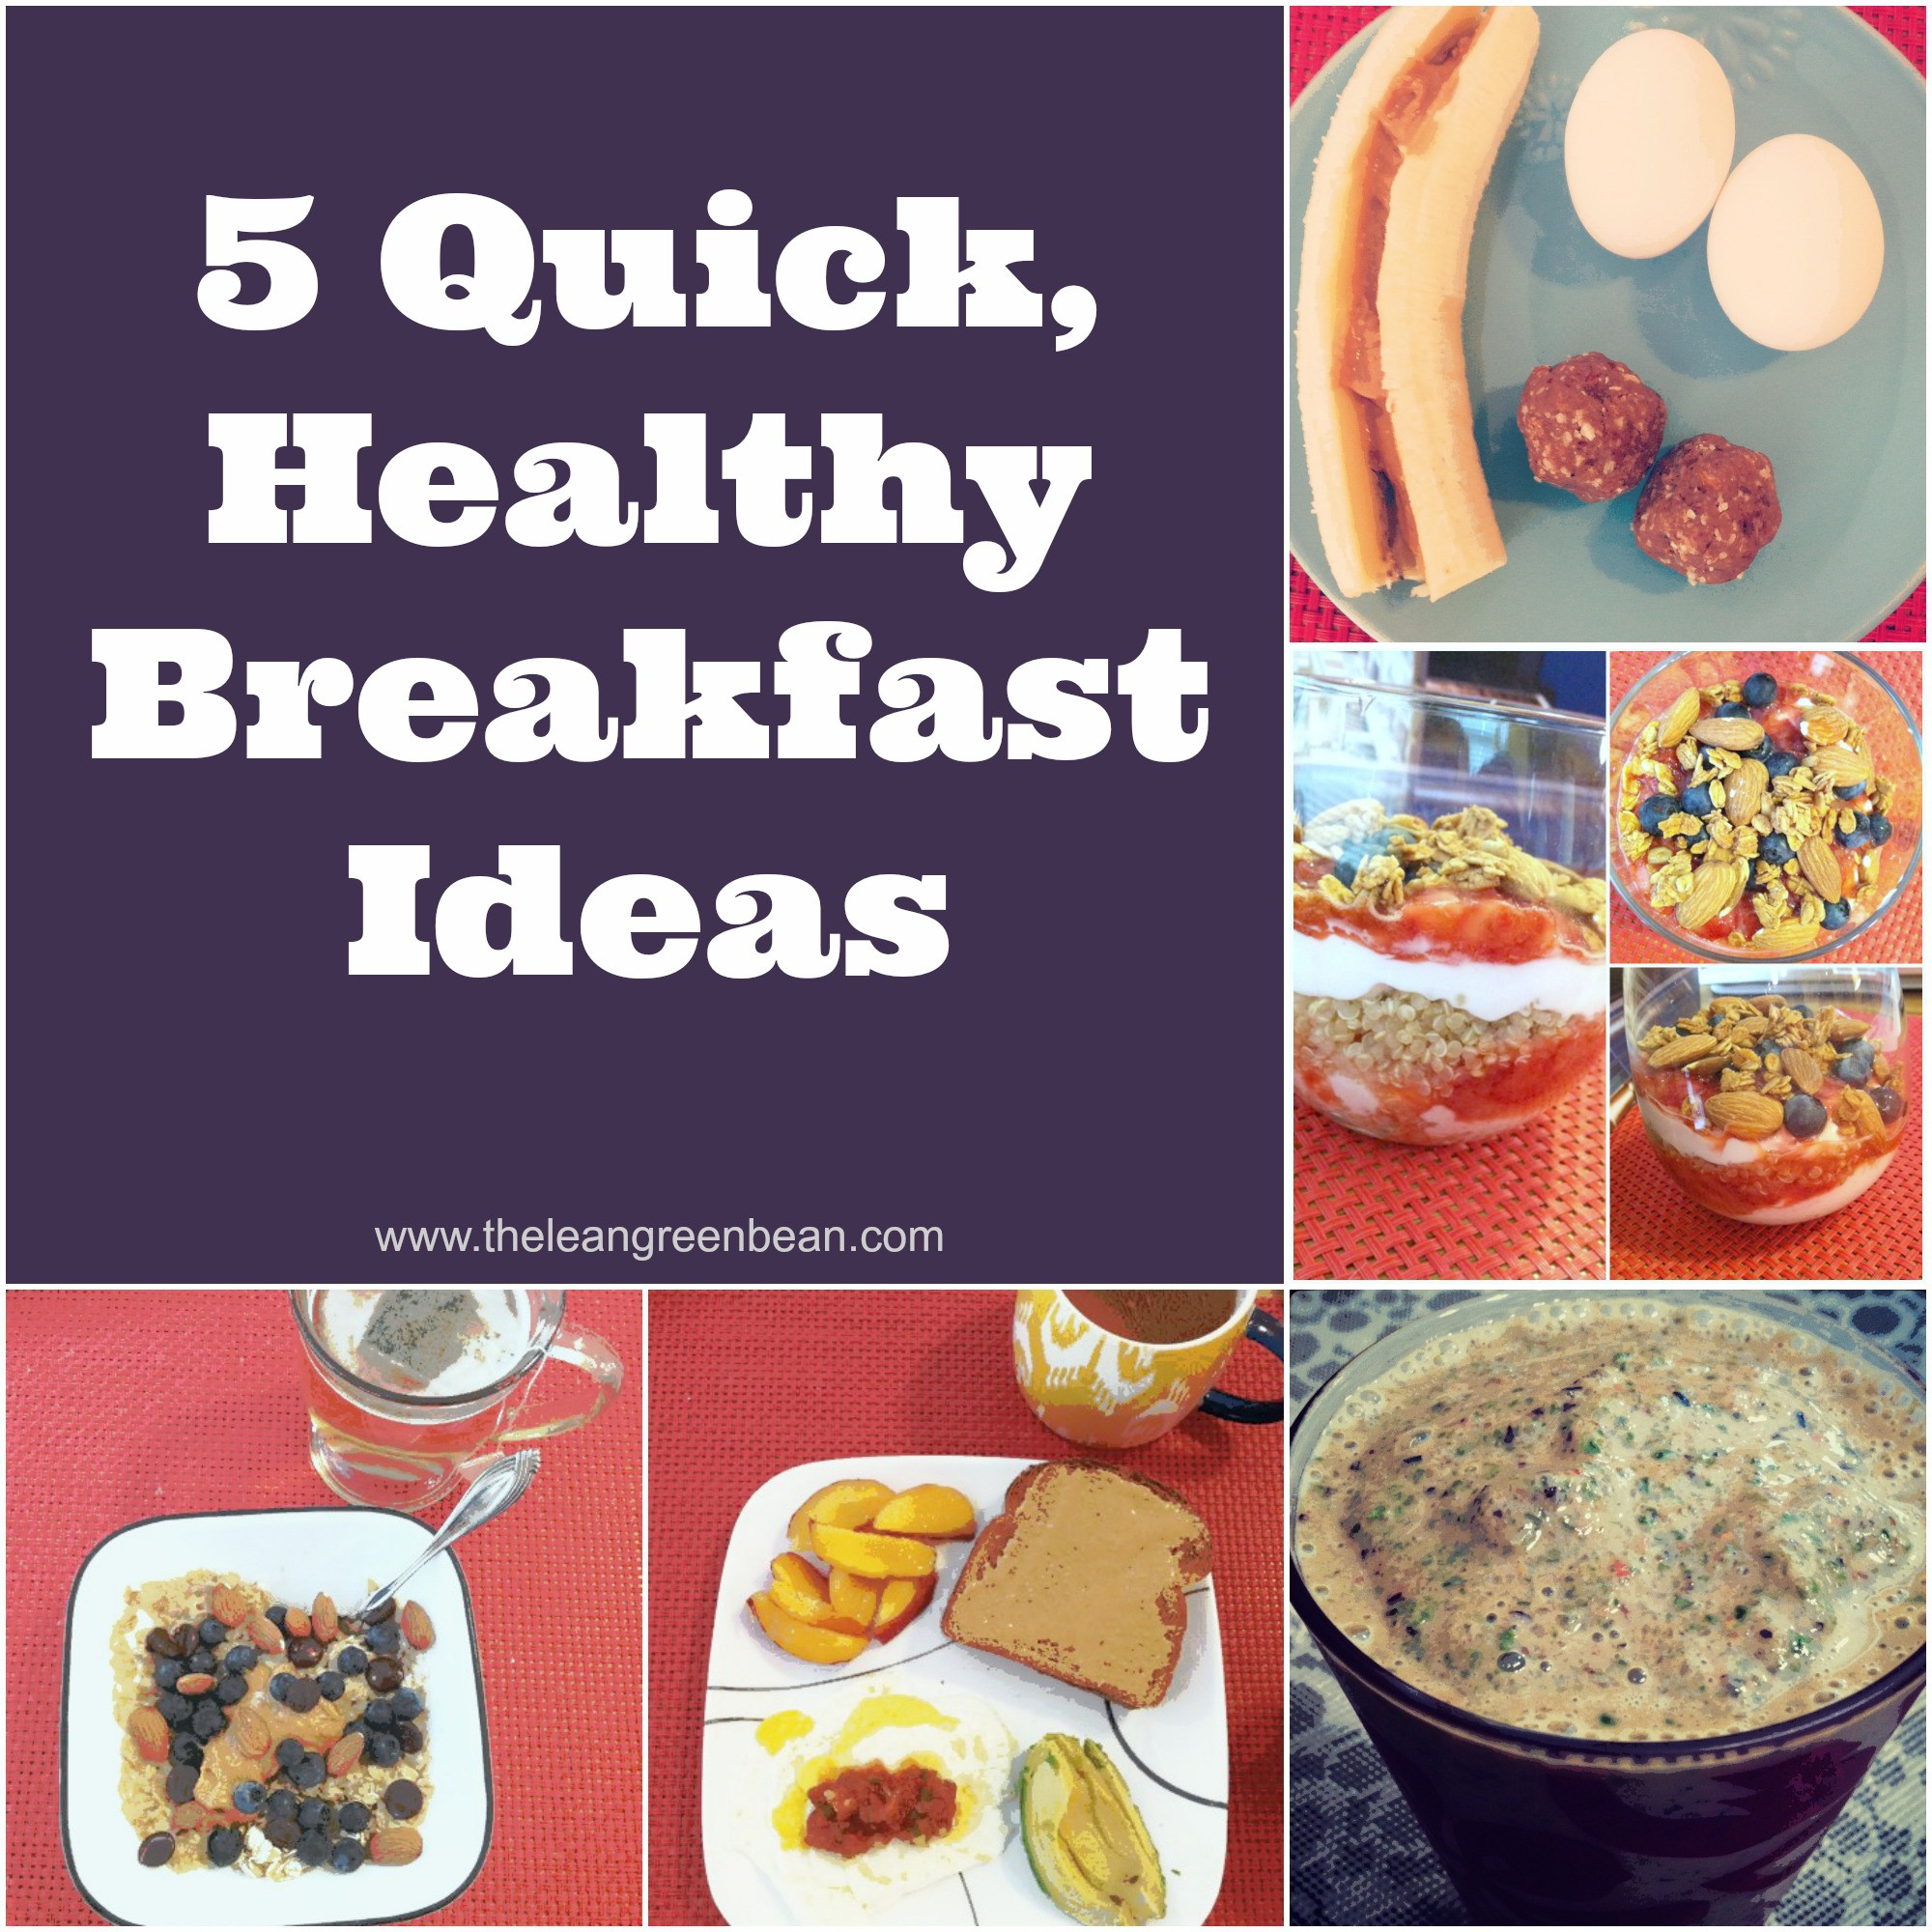 Quick And Healthy Breakfast Ideas  5 Quick Healthy Breakfast Ideas from a Registered Dietitian